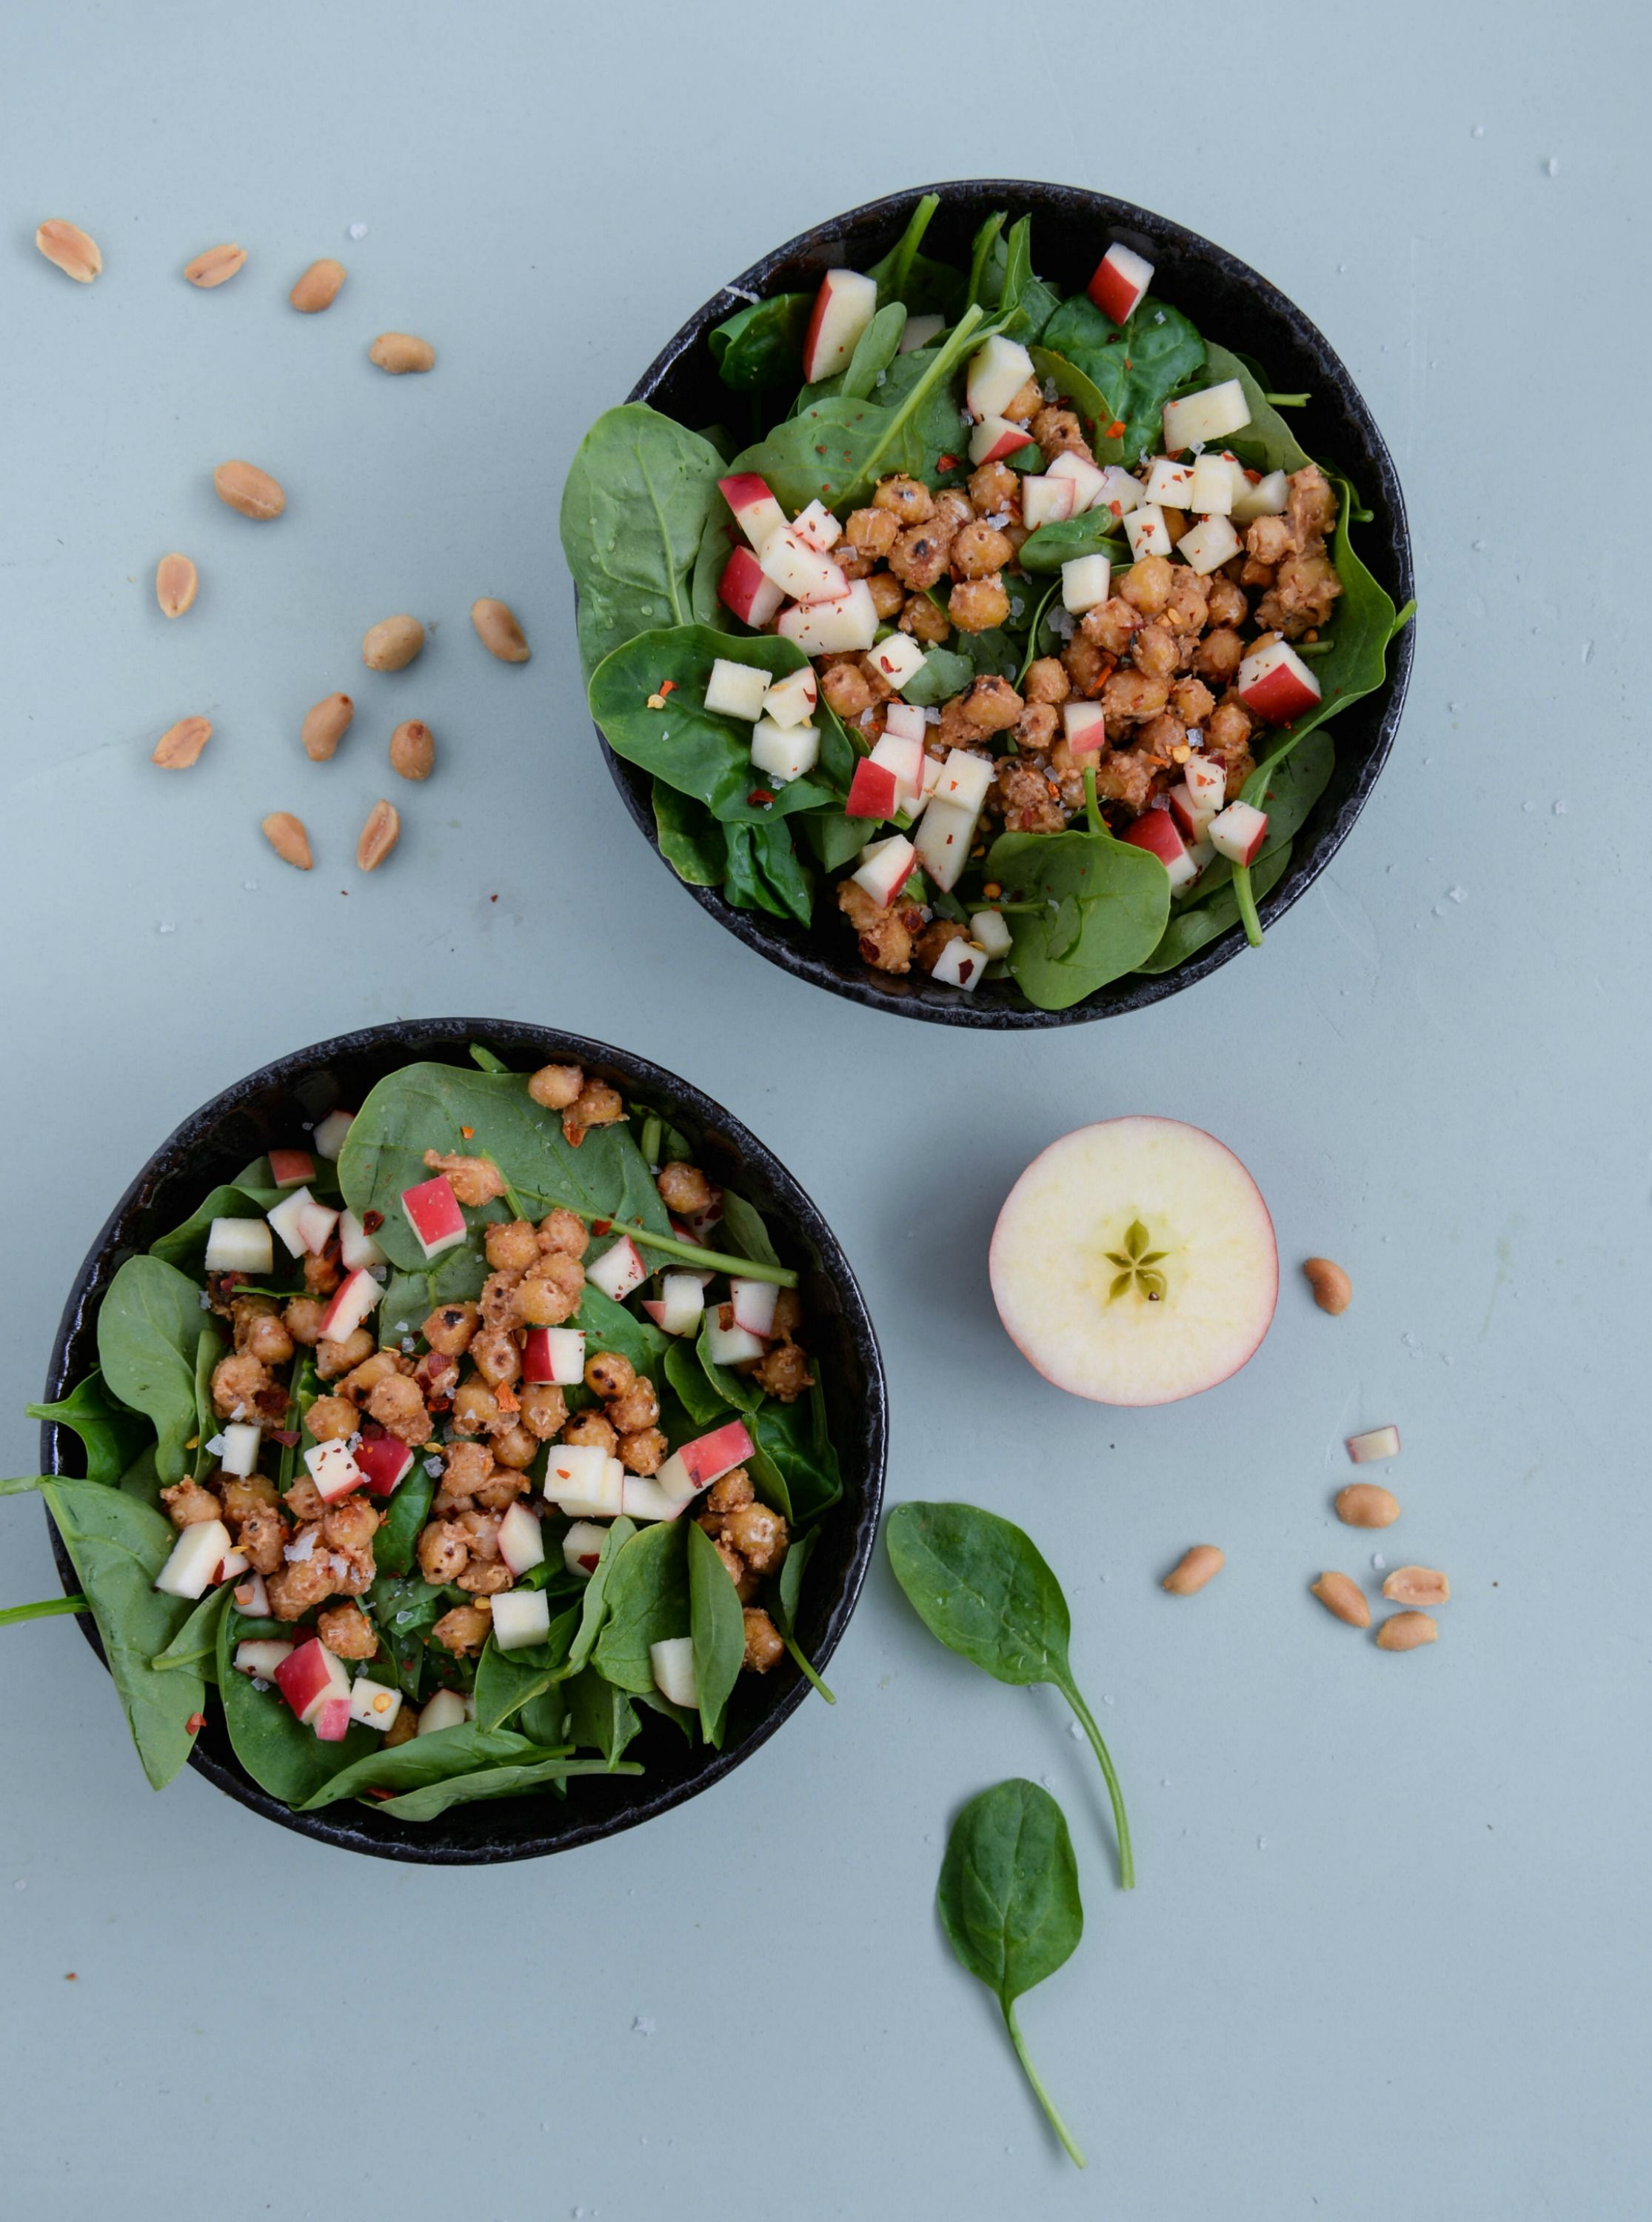 Spinach salad recipe for a salad made of baby spinach with peanut recipe for a salad made of baby spinach with peanut butter fried forumfinder Image collections